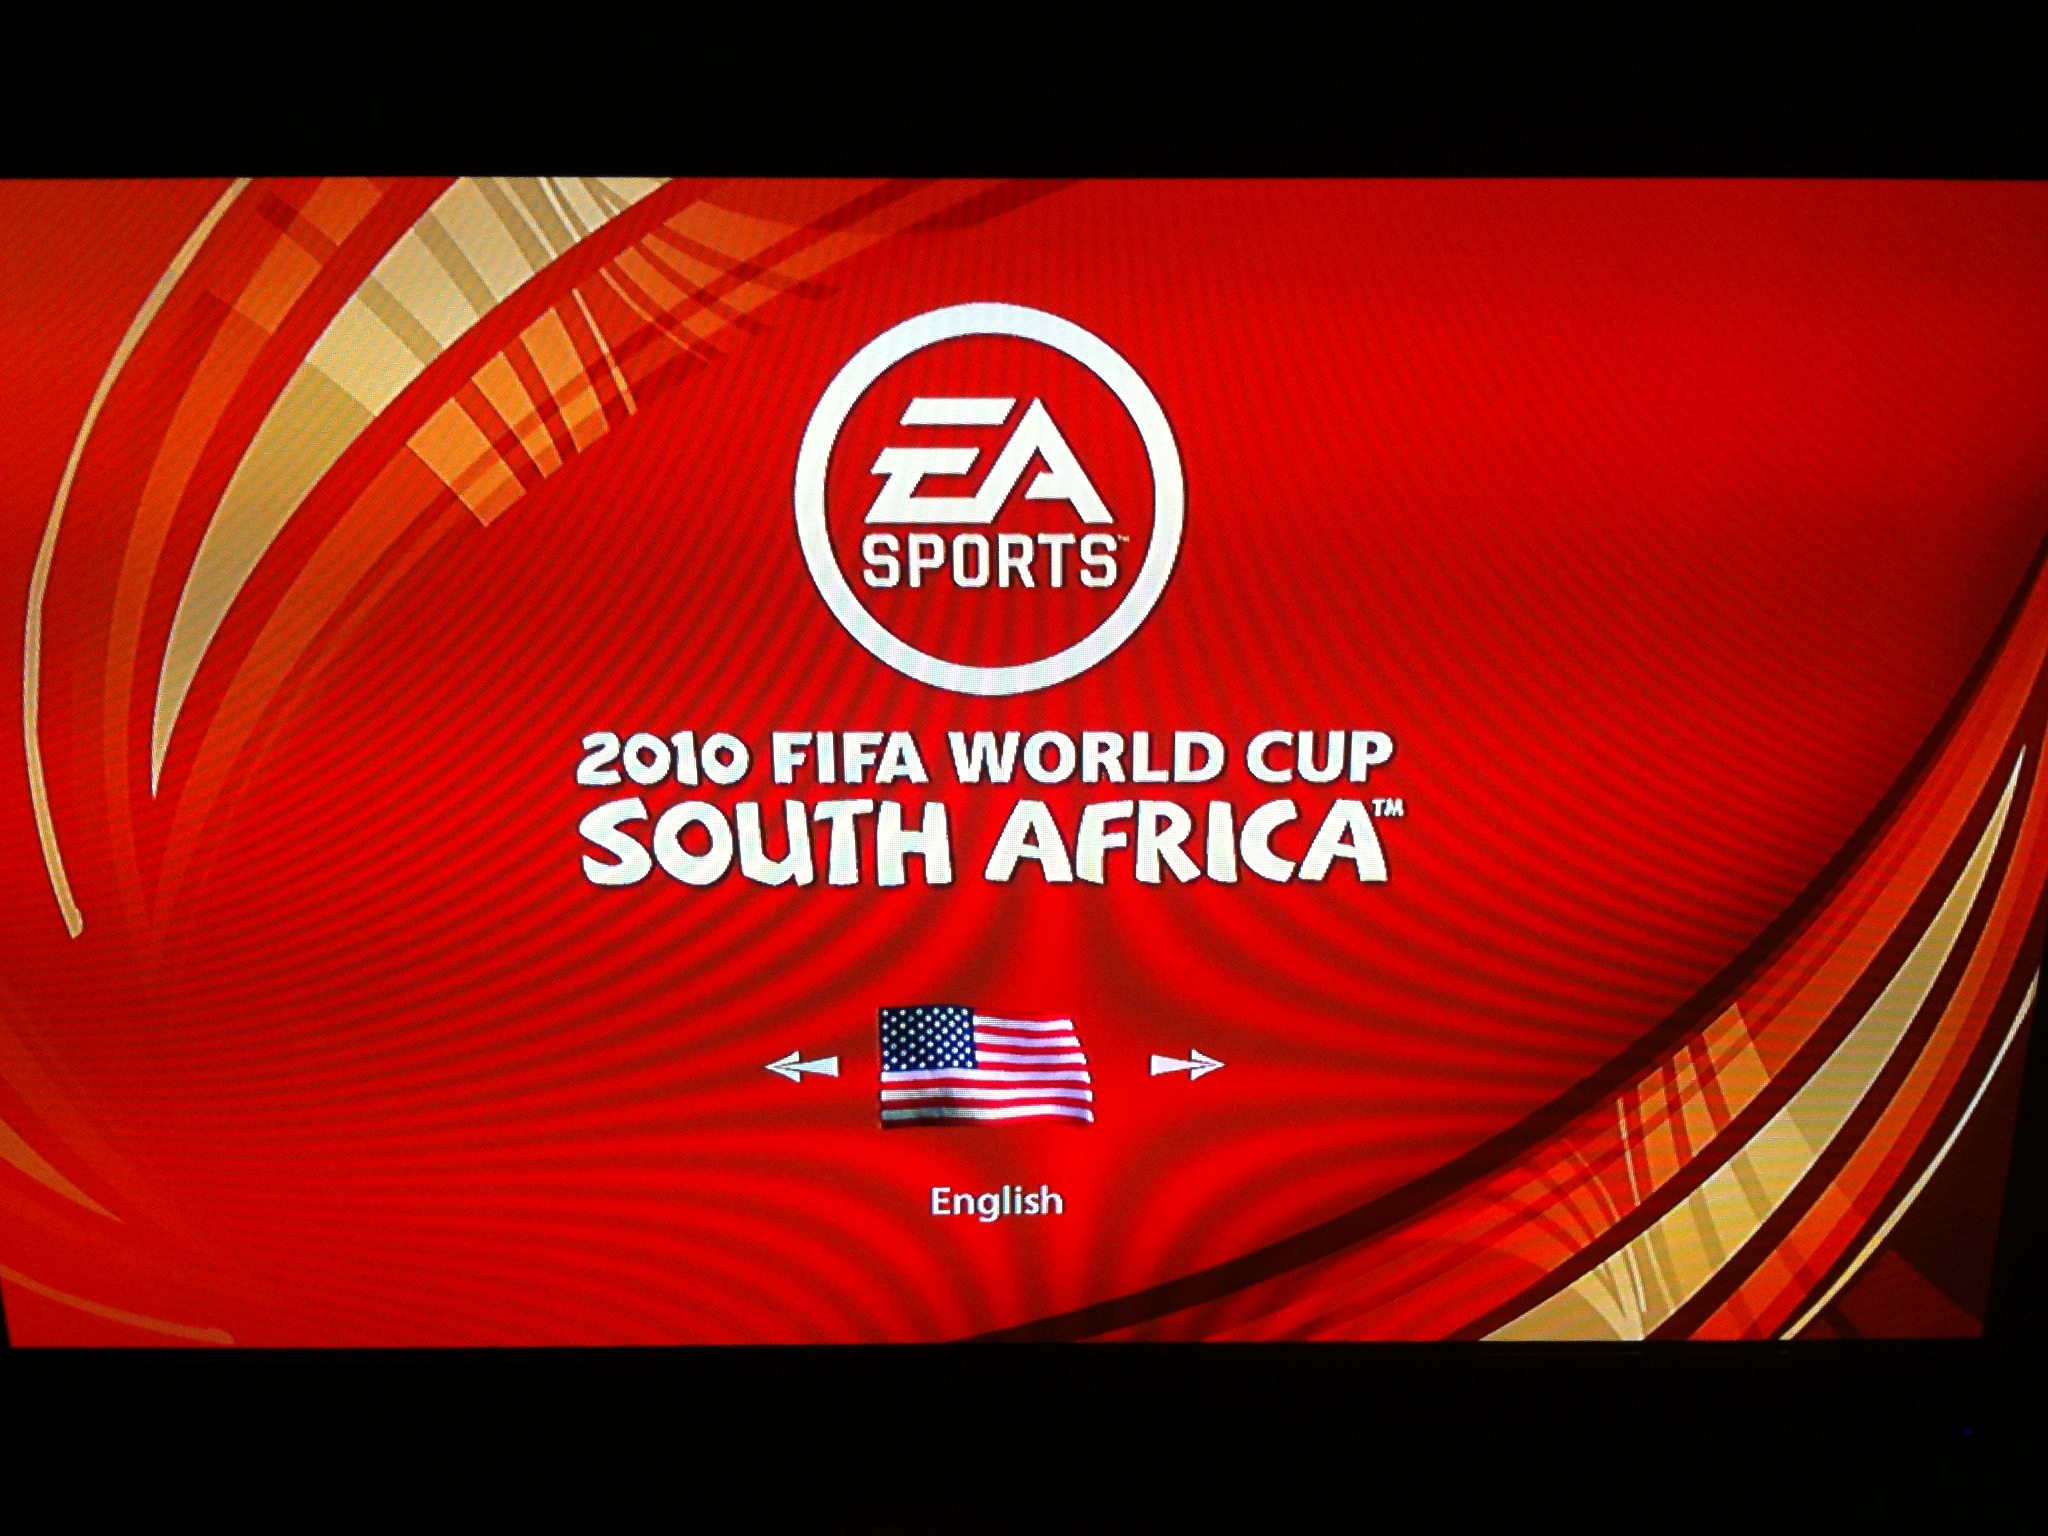 2010 FIFA World Cup South Africa Demo Download-img_0210.jpg